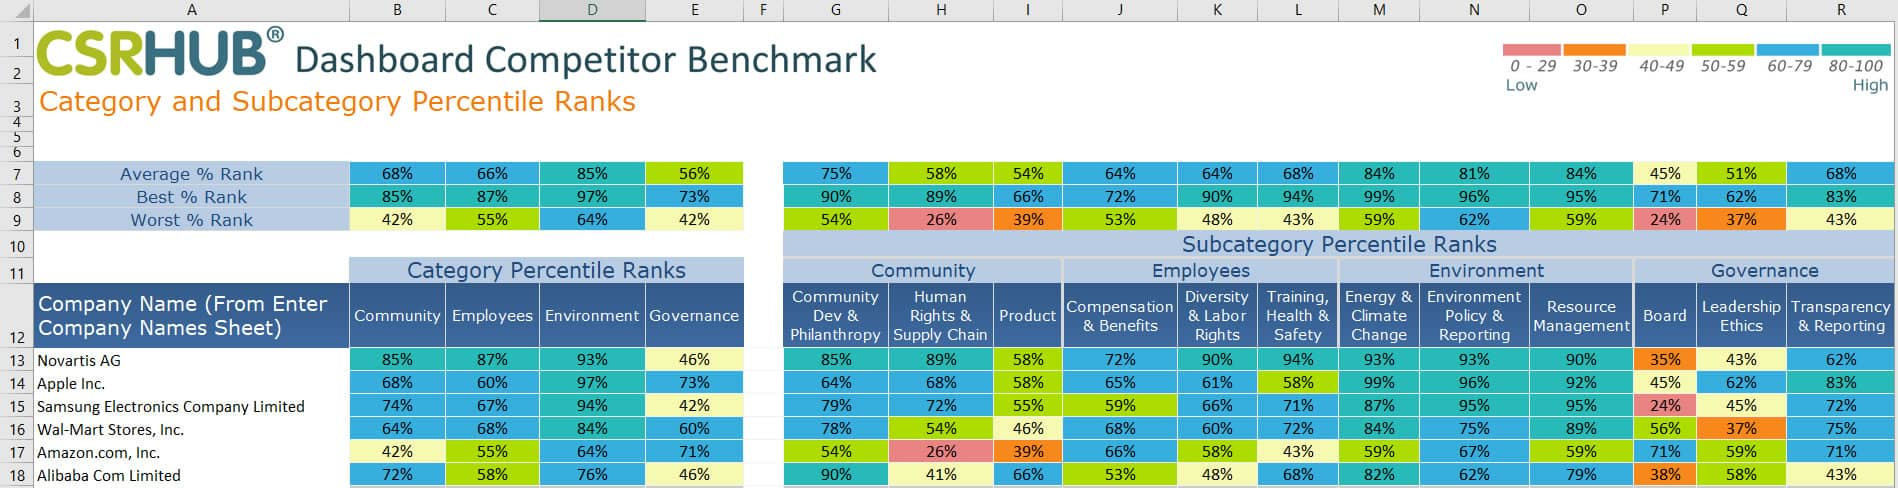 CSRHub benchmark dashboard 2021a 2